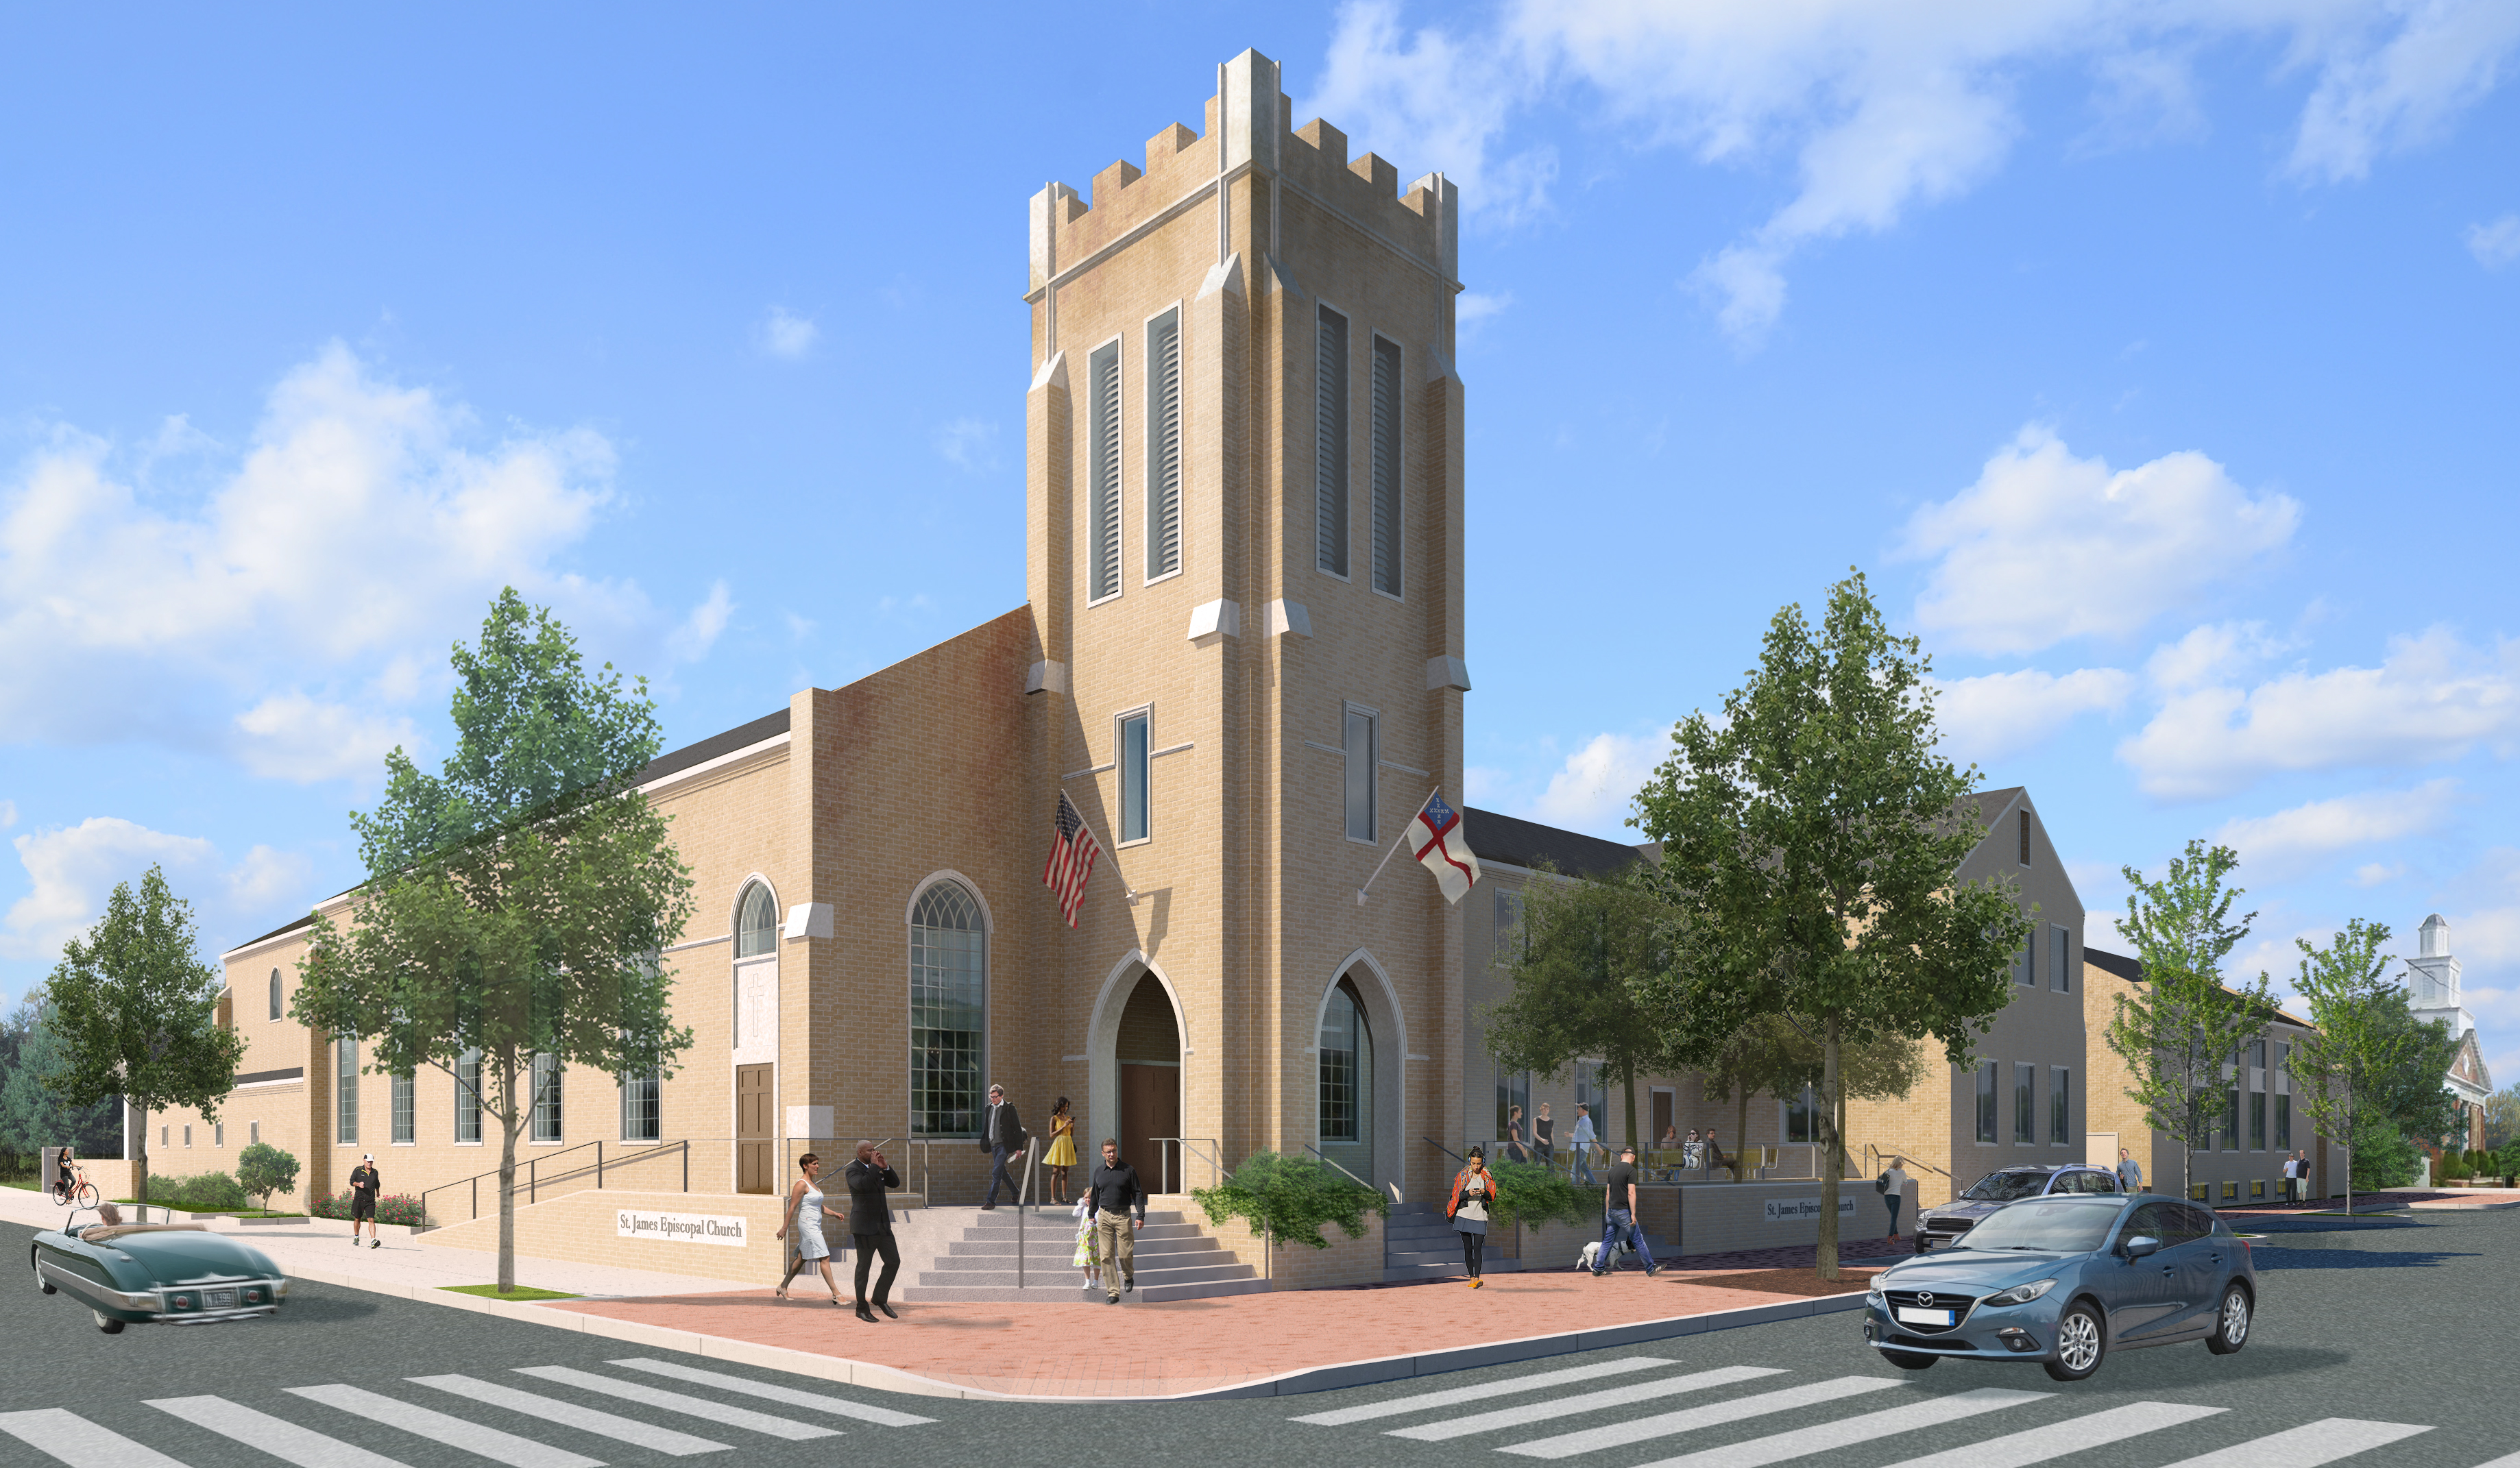 st james exterior rendering 1